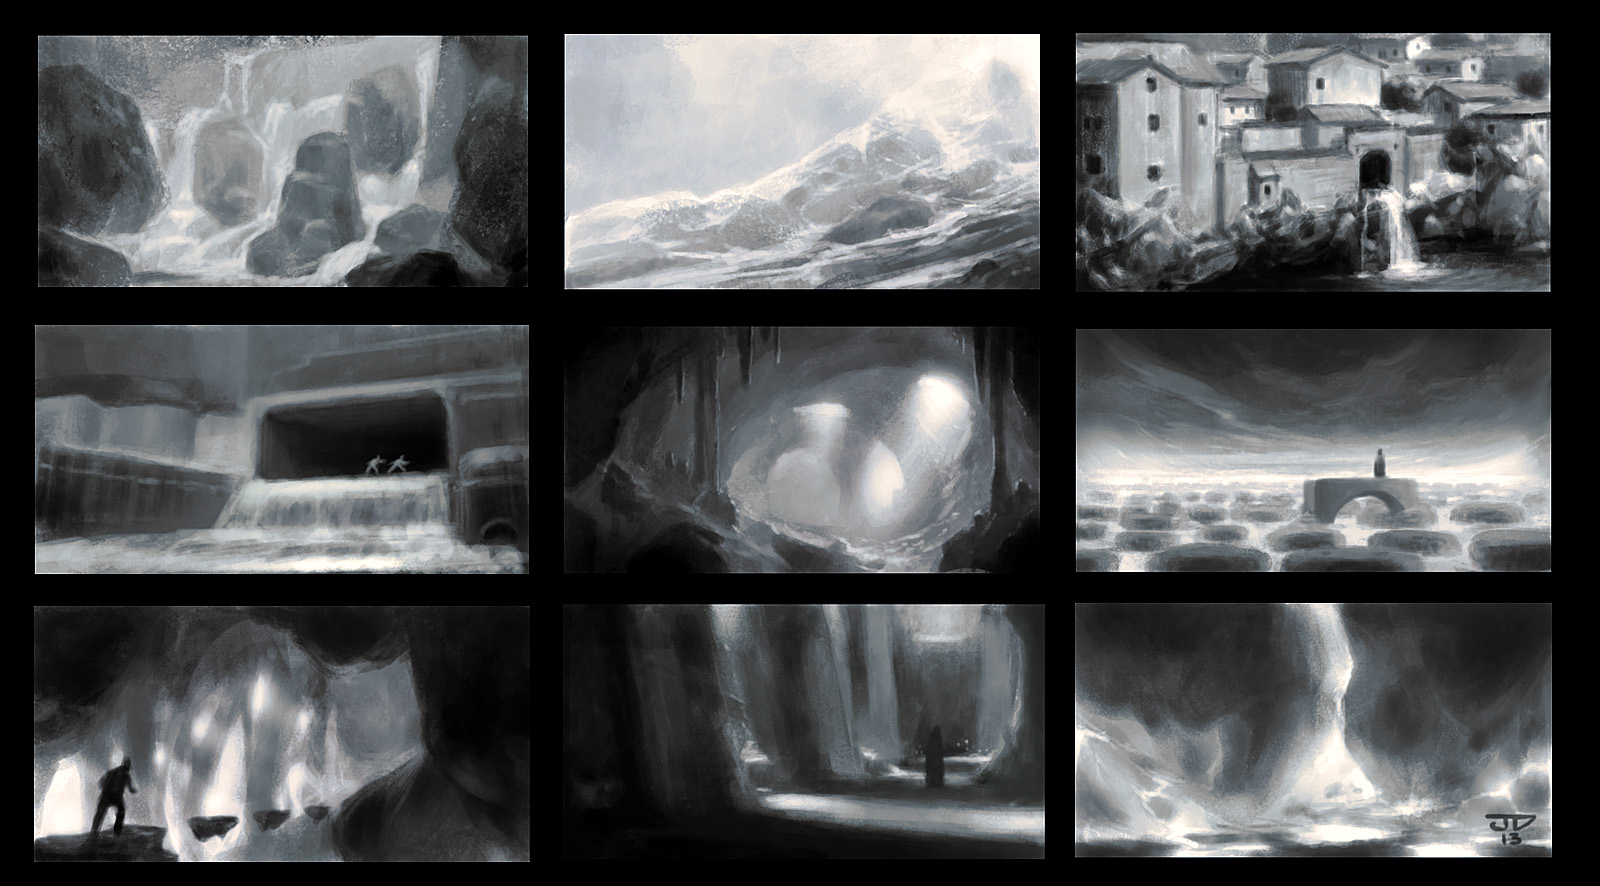 Thumbnail sketches by hunterkiller